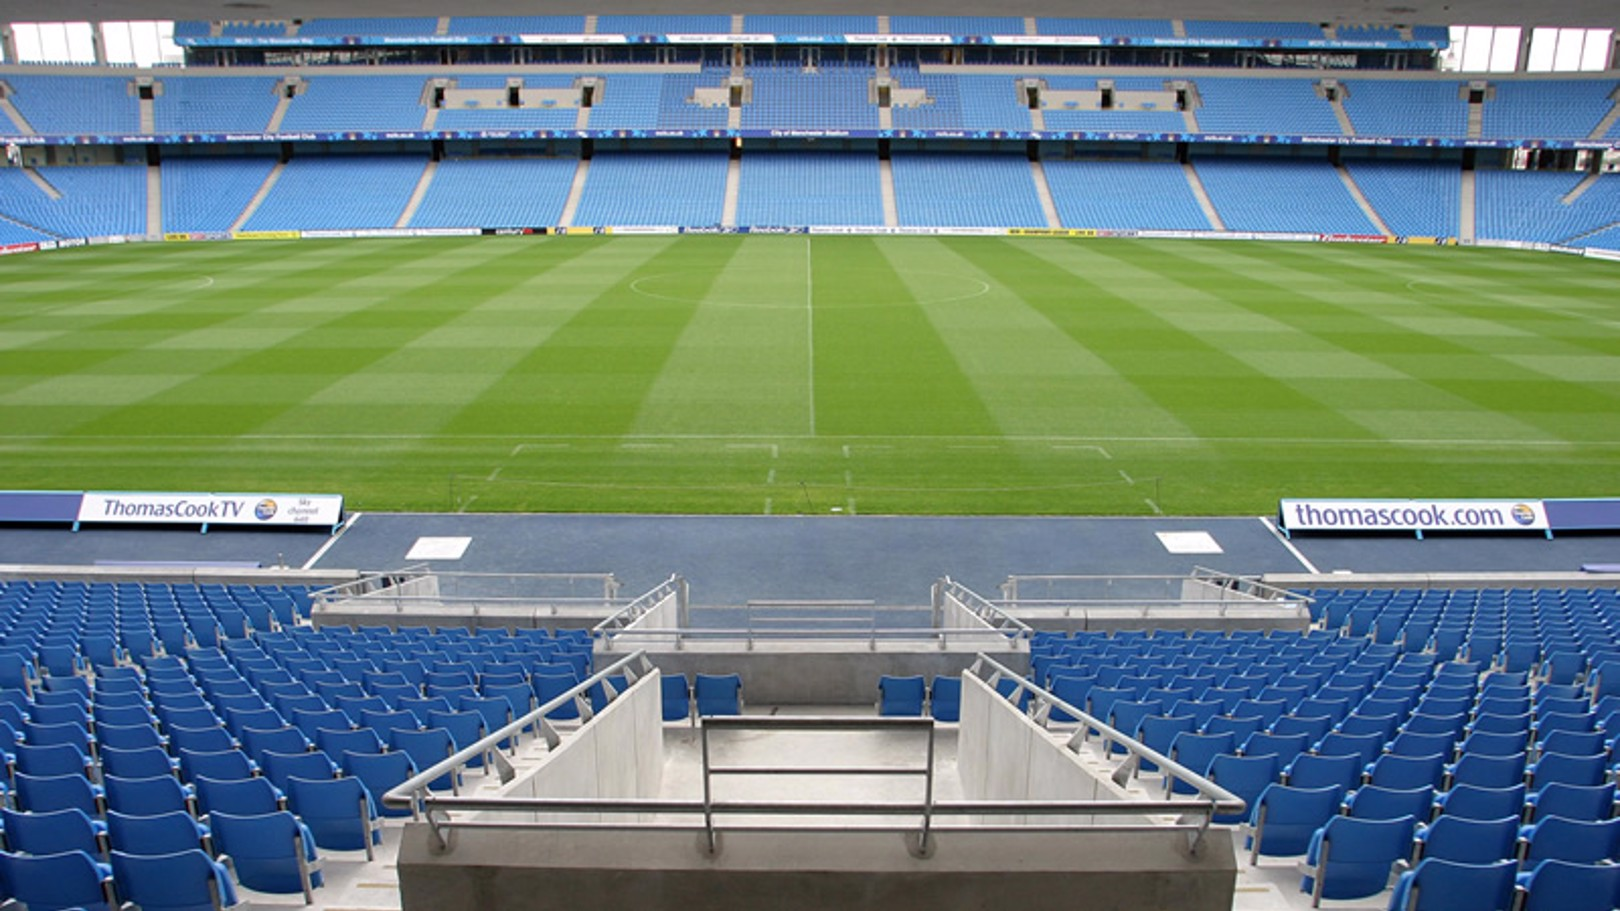 City of Manchester Stadium players tunnel and pitch